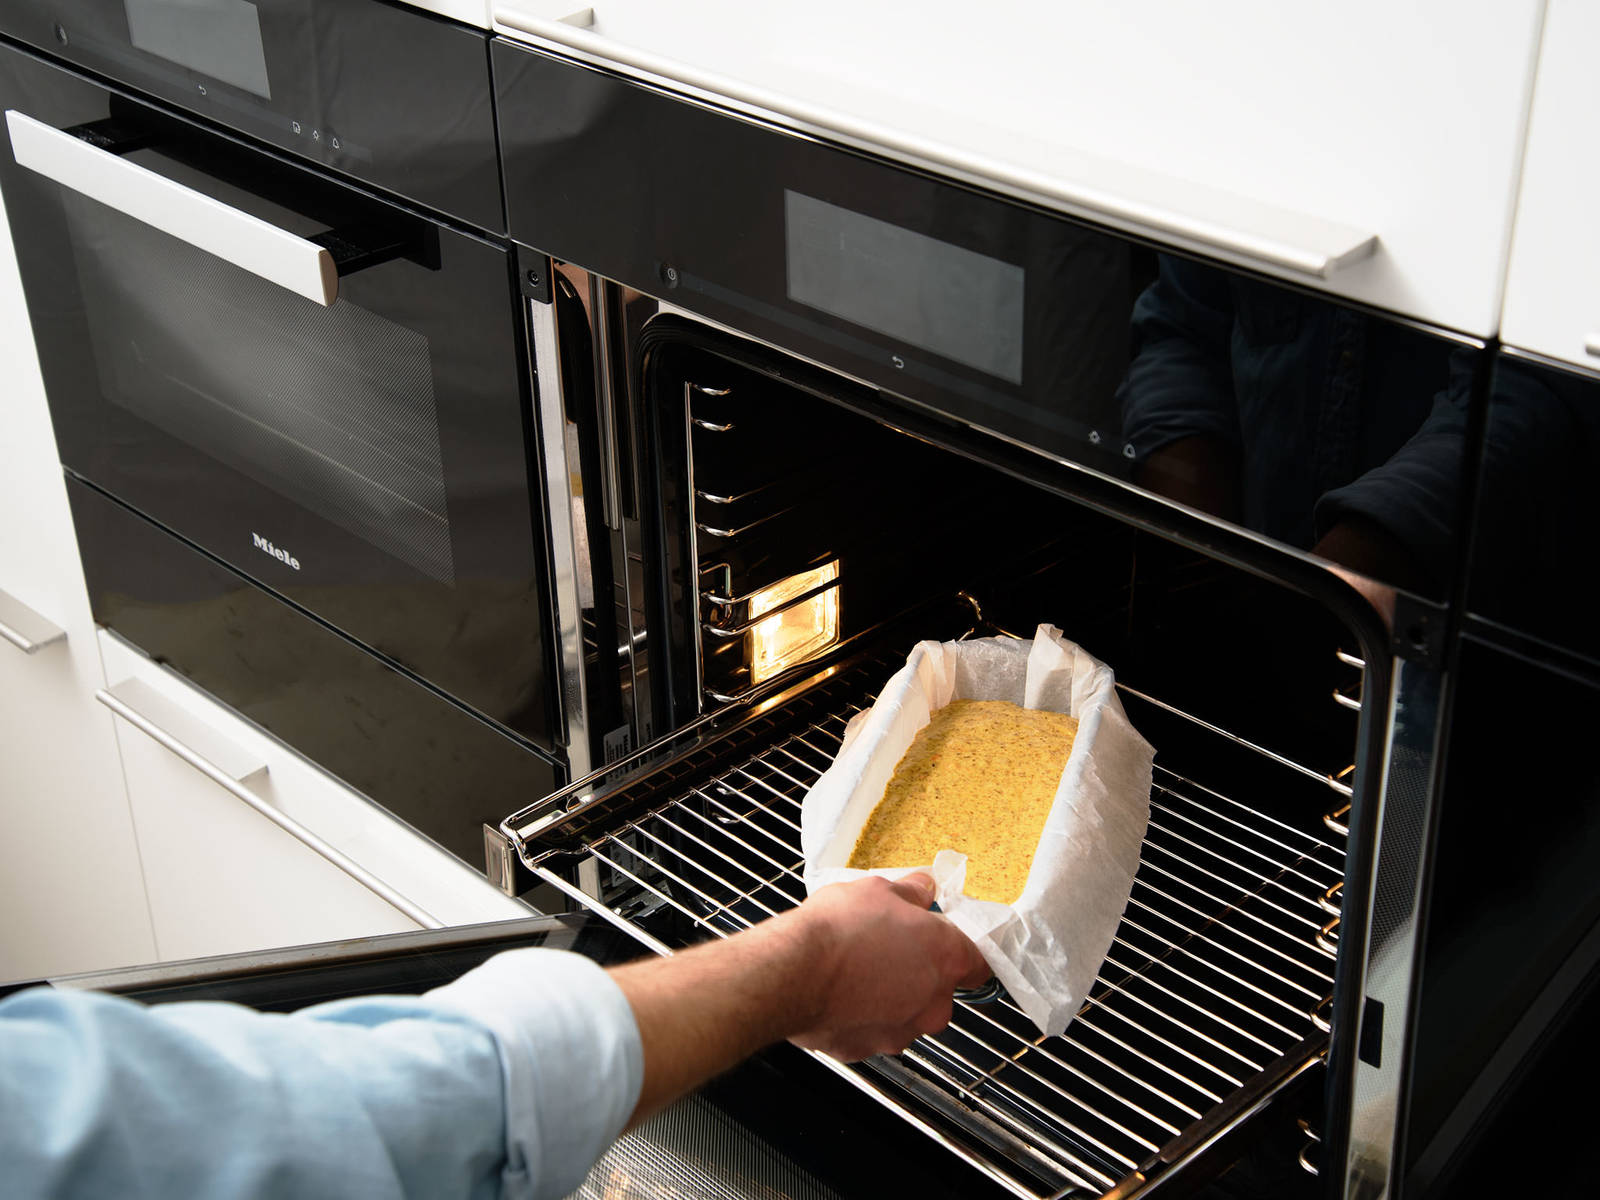 Transfer batter into a parchment-lined loaf pan. Bake at 175°C/350°F for approx. 45 min. Remove from oven and let cool down before taking the cake out of the baking dish and remove the parchment paper.